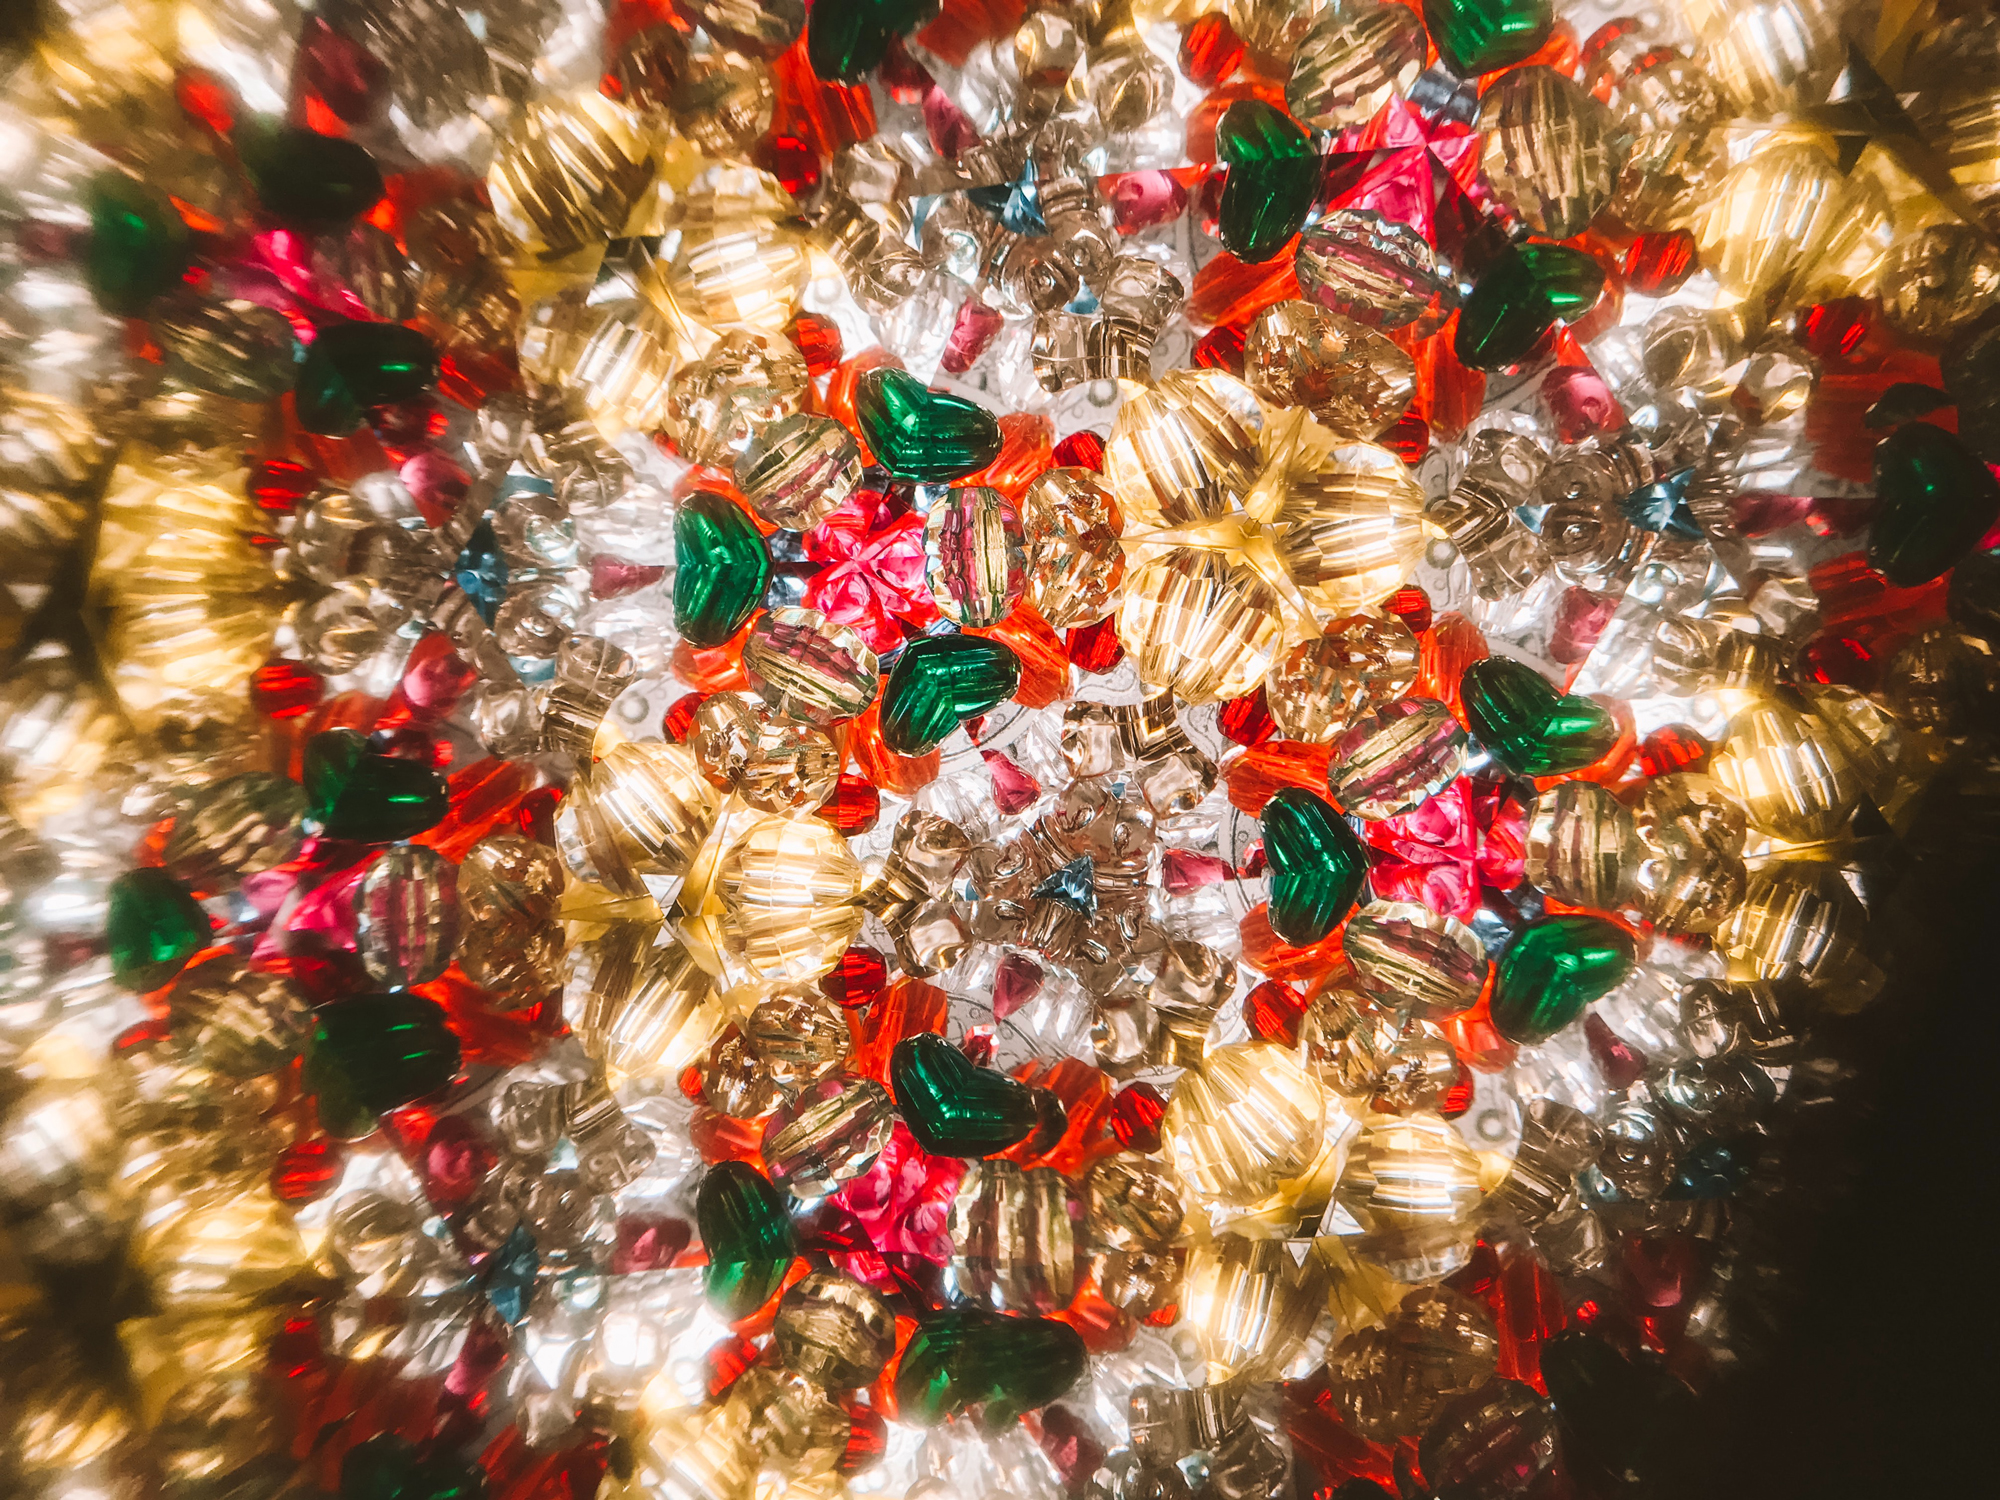 Decorations in Christmas colours